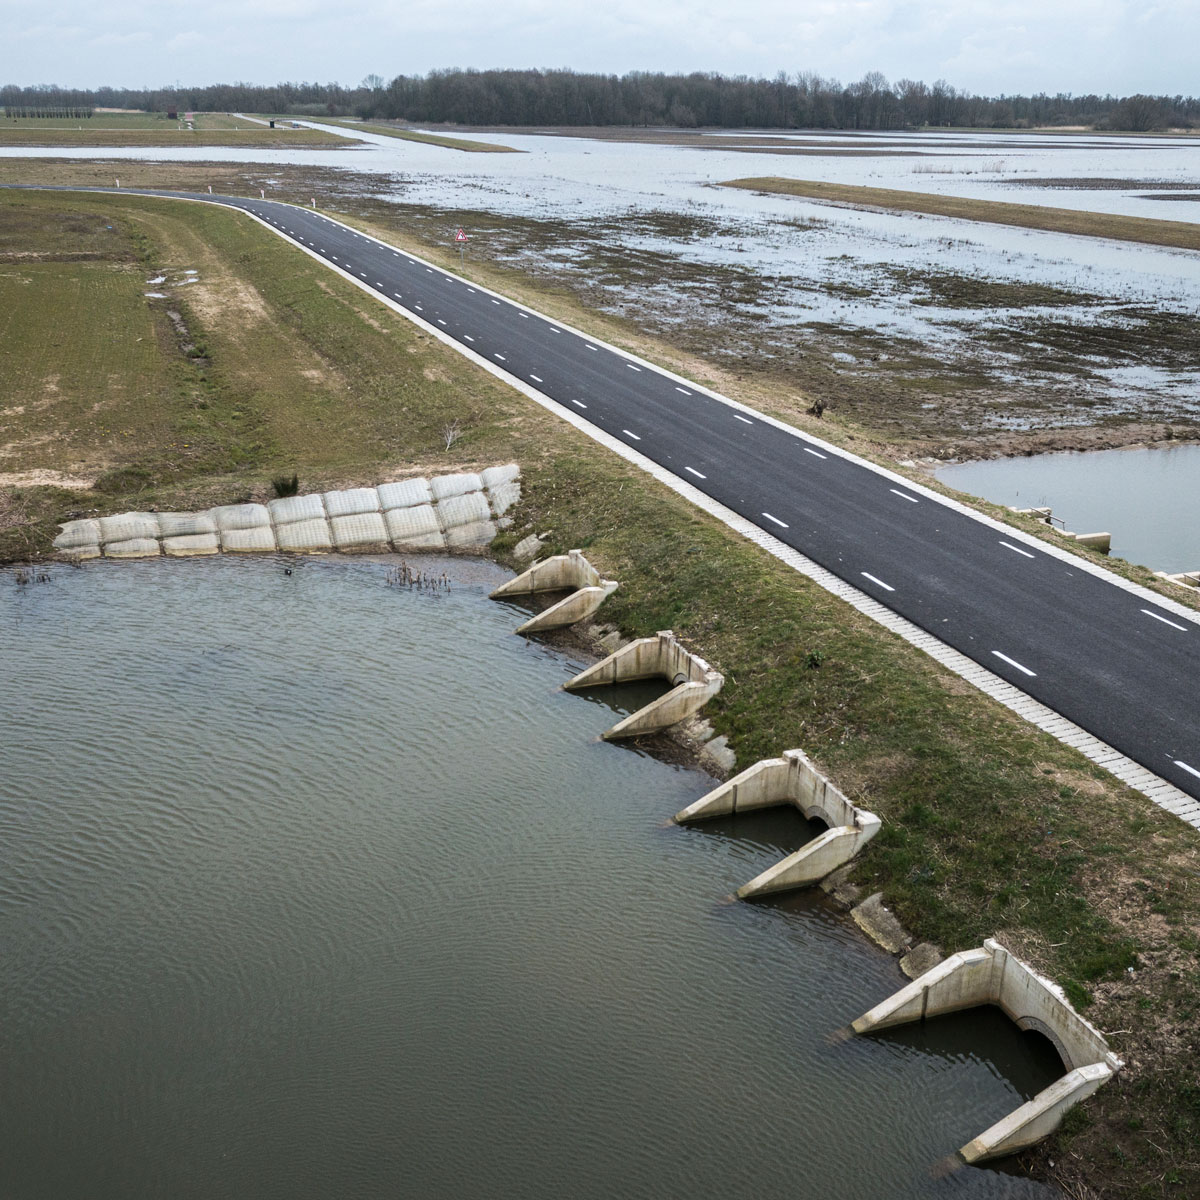 A new dike reopens some of the historic floodplain of the Rhine River (R) near Nijmegen, the Netherlands from still-protected land (L).